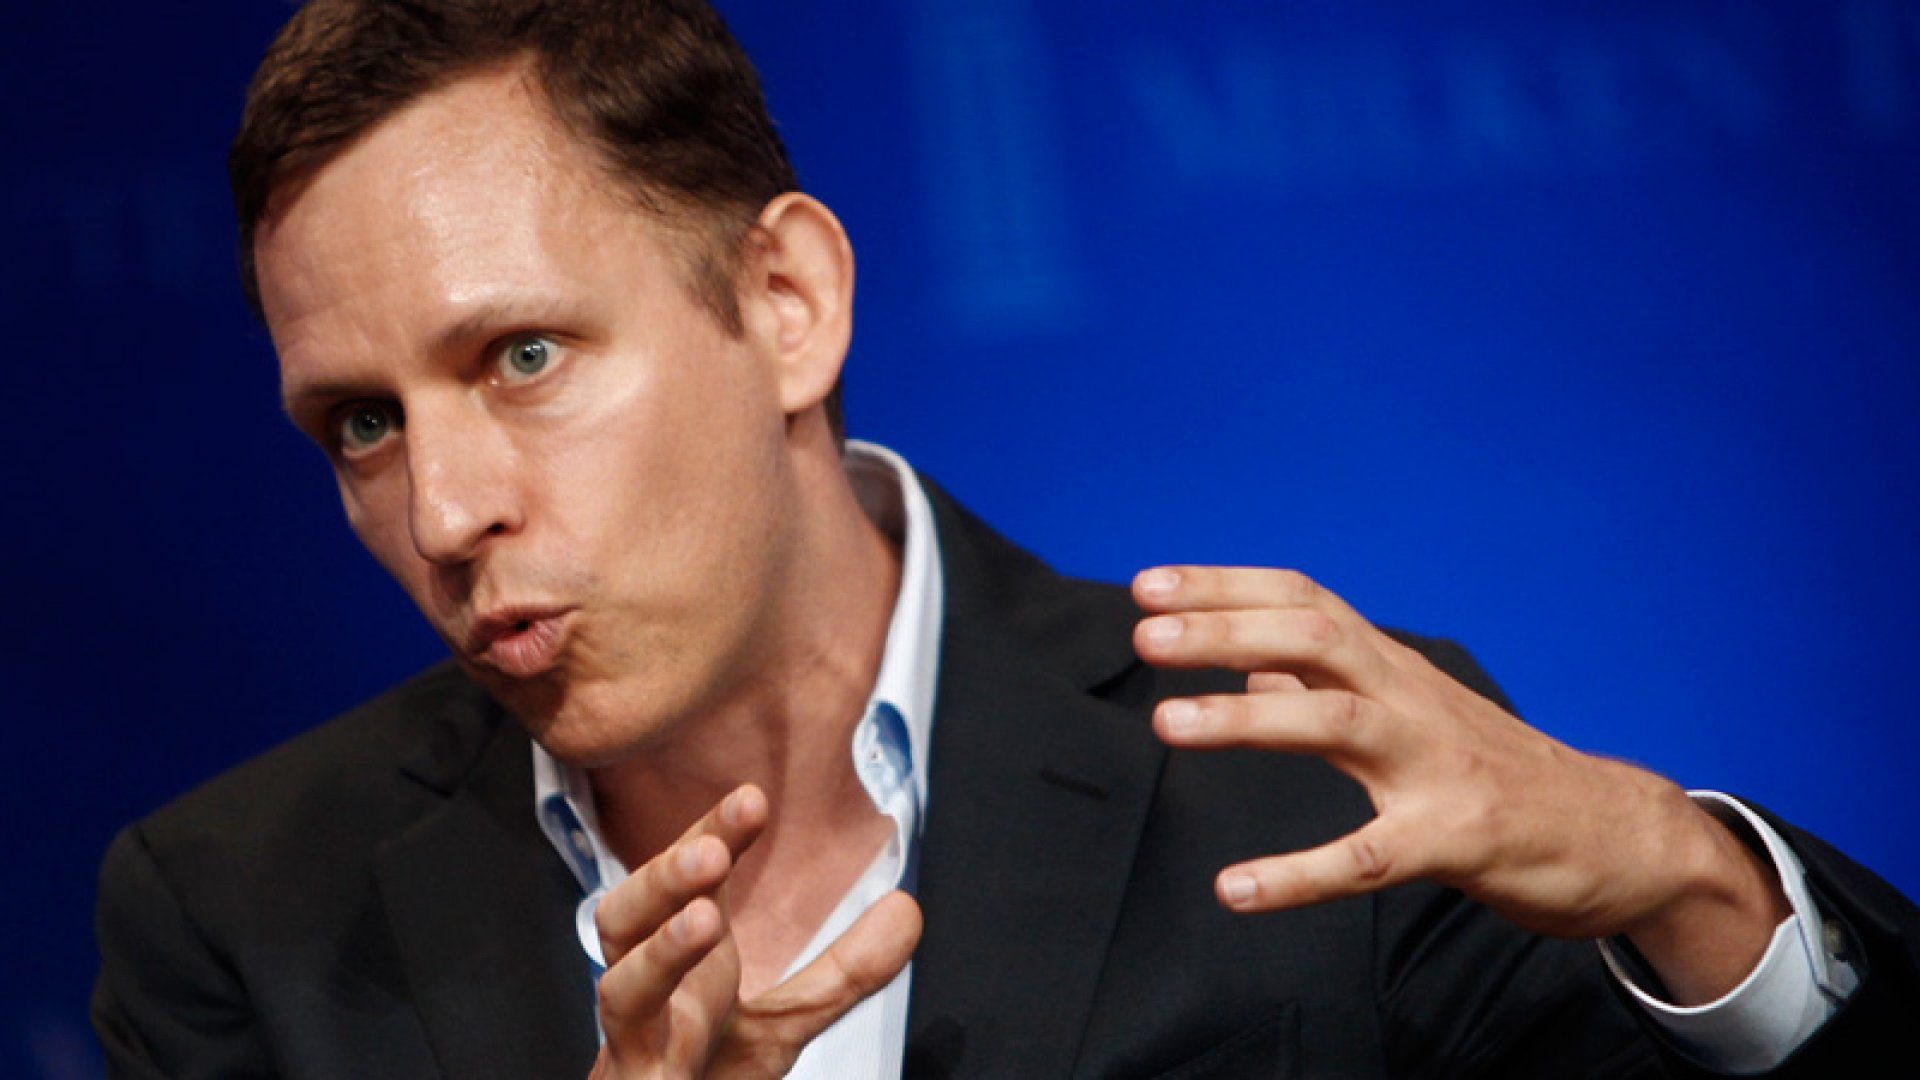 Billionaire investor Peter Thiel co-founded Palantir Technologies in 2004. His guiding hand can be felt throughout numerous startups that engineers from the company have gone on to found.